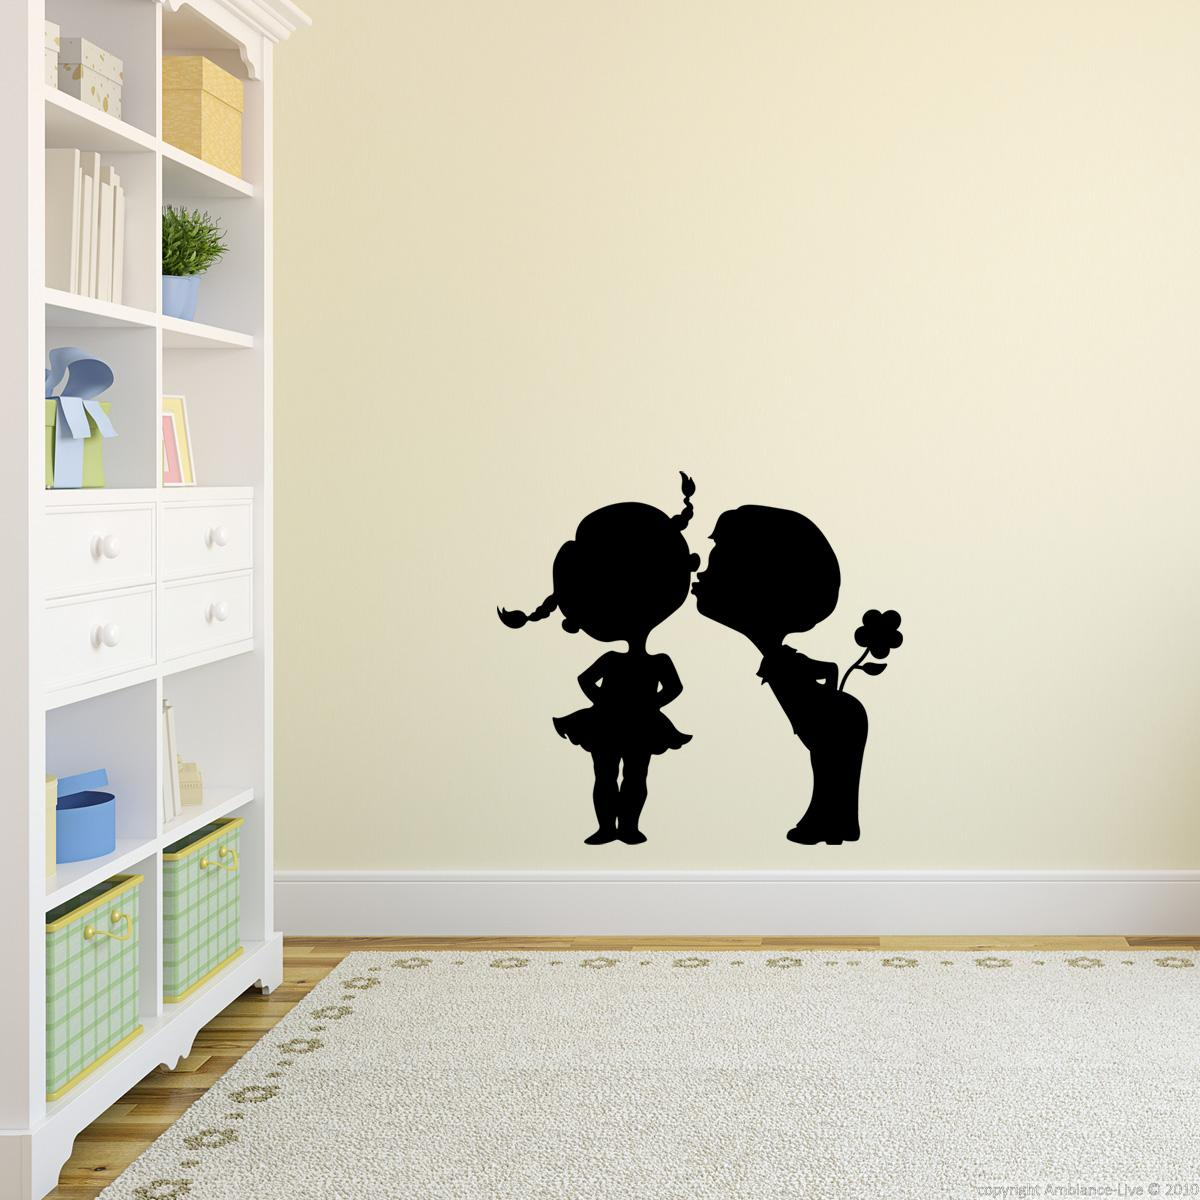 wandtattoos kinderzimmer wandtattoo m dchen jungen und blume ambiance. Black Bedroom Furniture Sets. Home Design Ideas